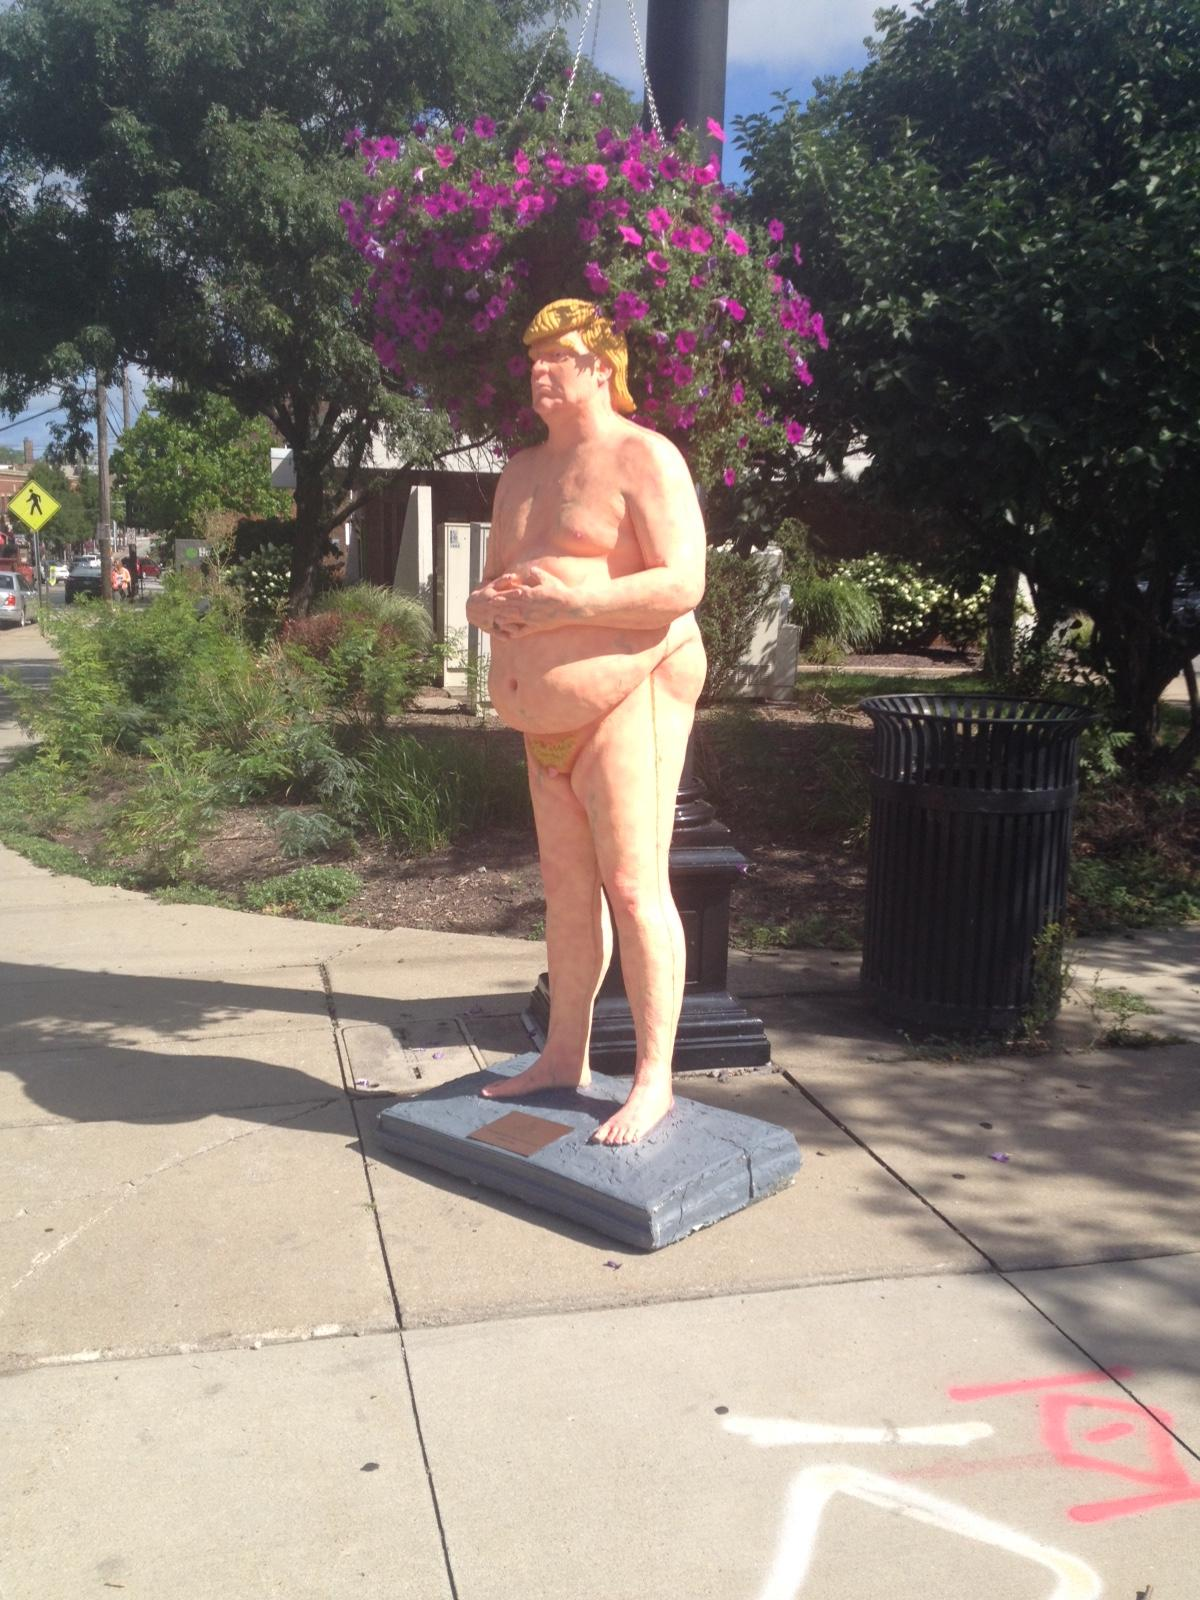 Statue in Cleveland. Photo courtesy of Jason Goodrich